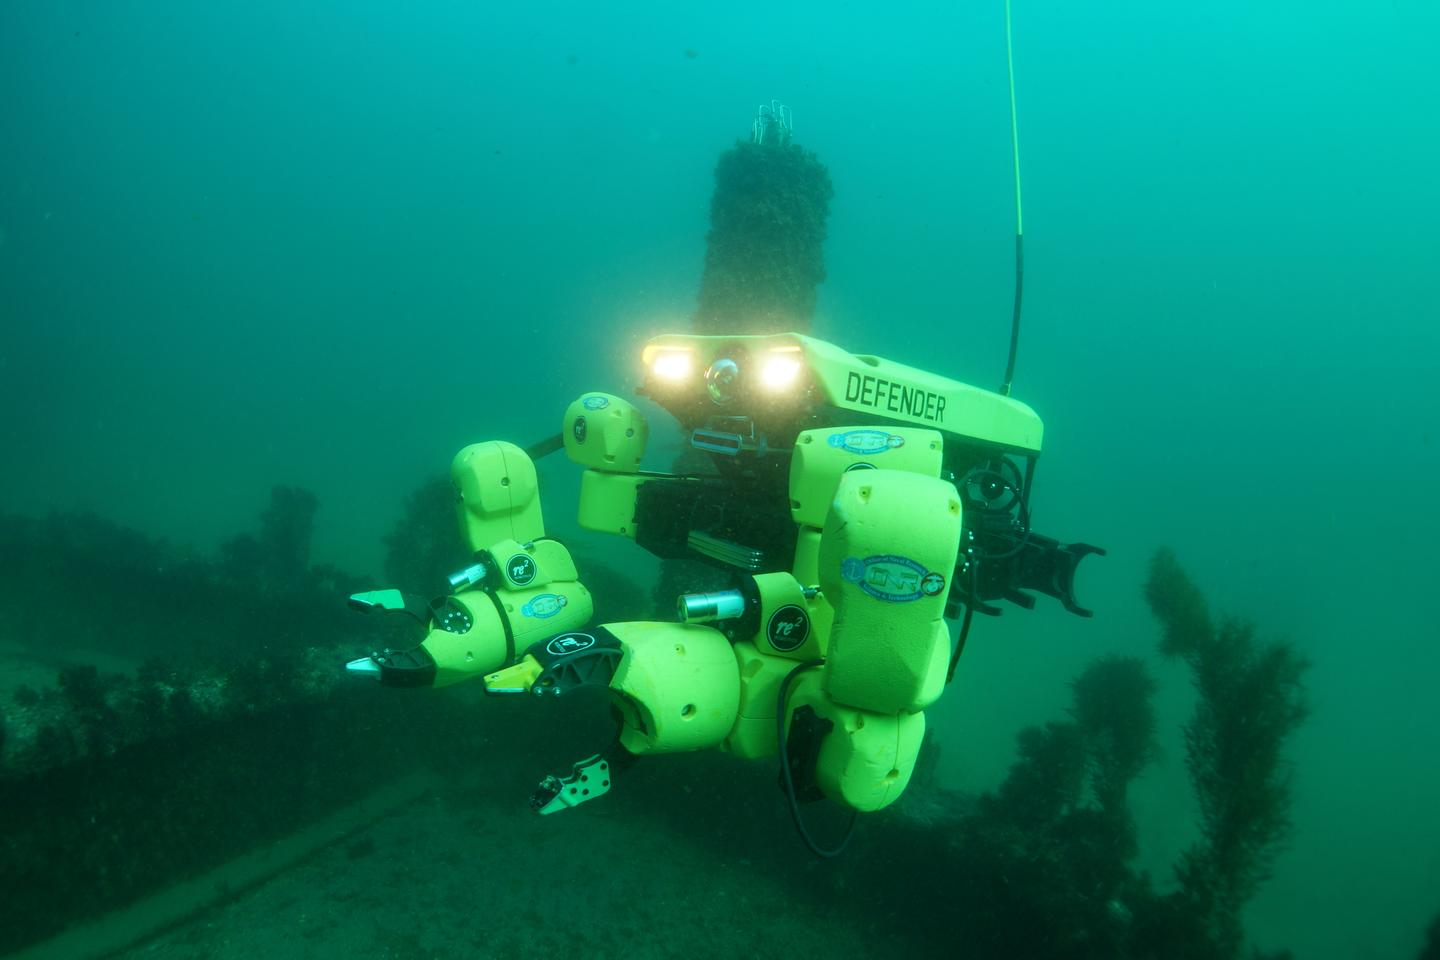 The Maritime Mine Neutralization System (M2NS) will incorporate of a pair of RE2 Robotics' Sapien Sea Class robotic arms mounted on a VideoRay Defender ROV